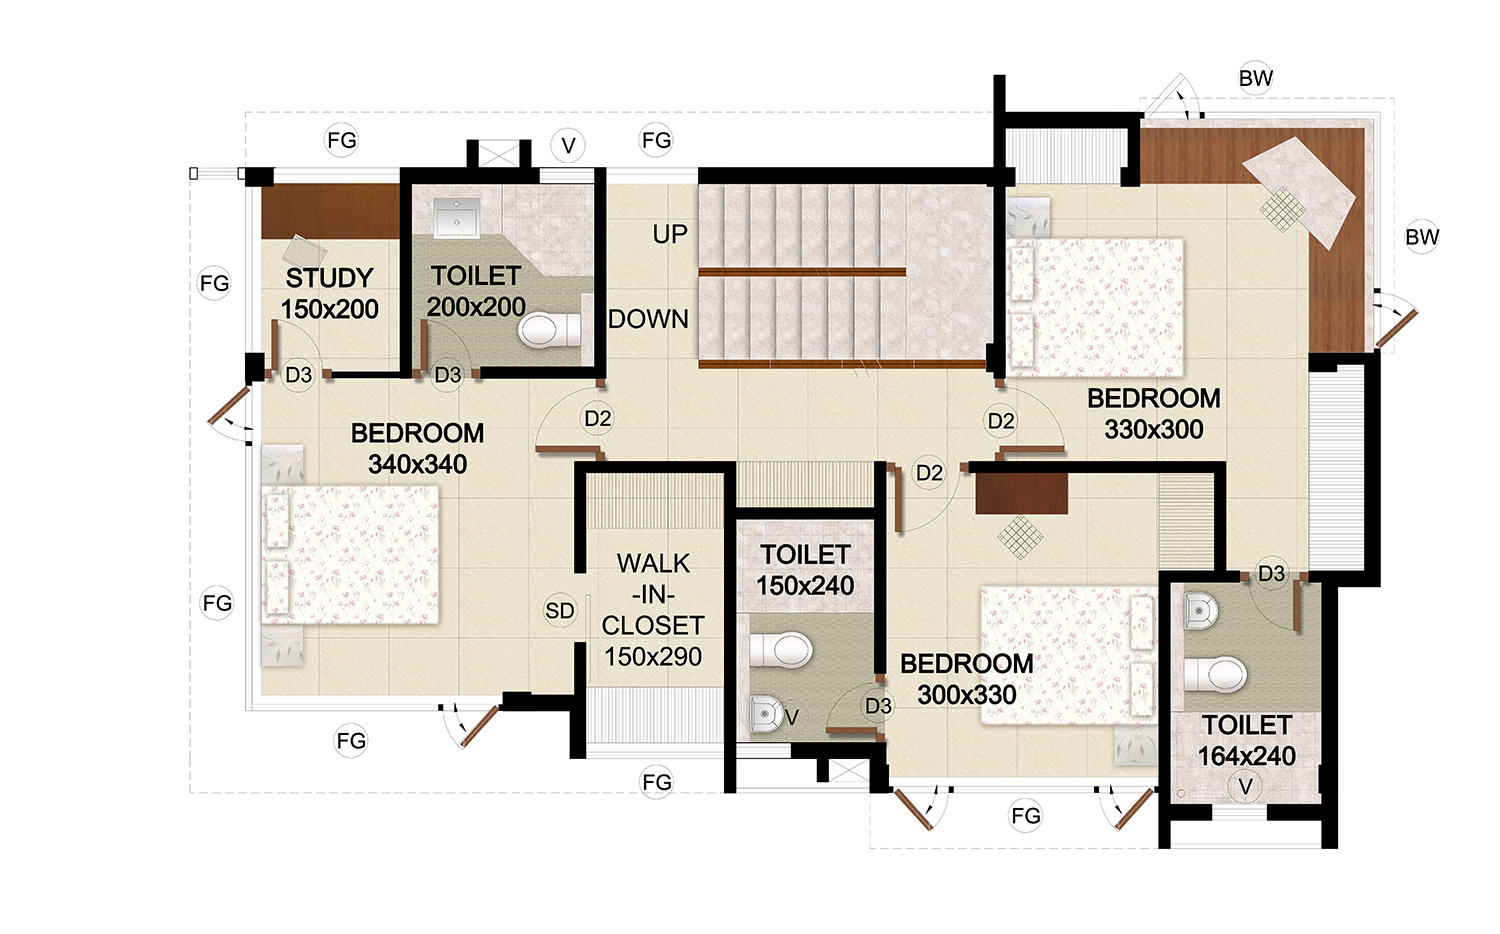 ClaySys Heights Villa Kakkanad - Floor Plan - First Floor